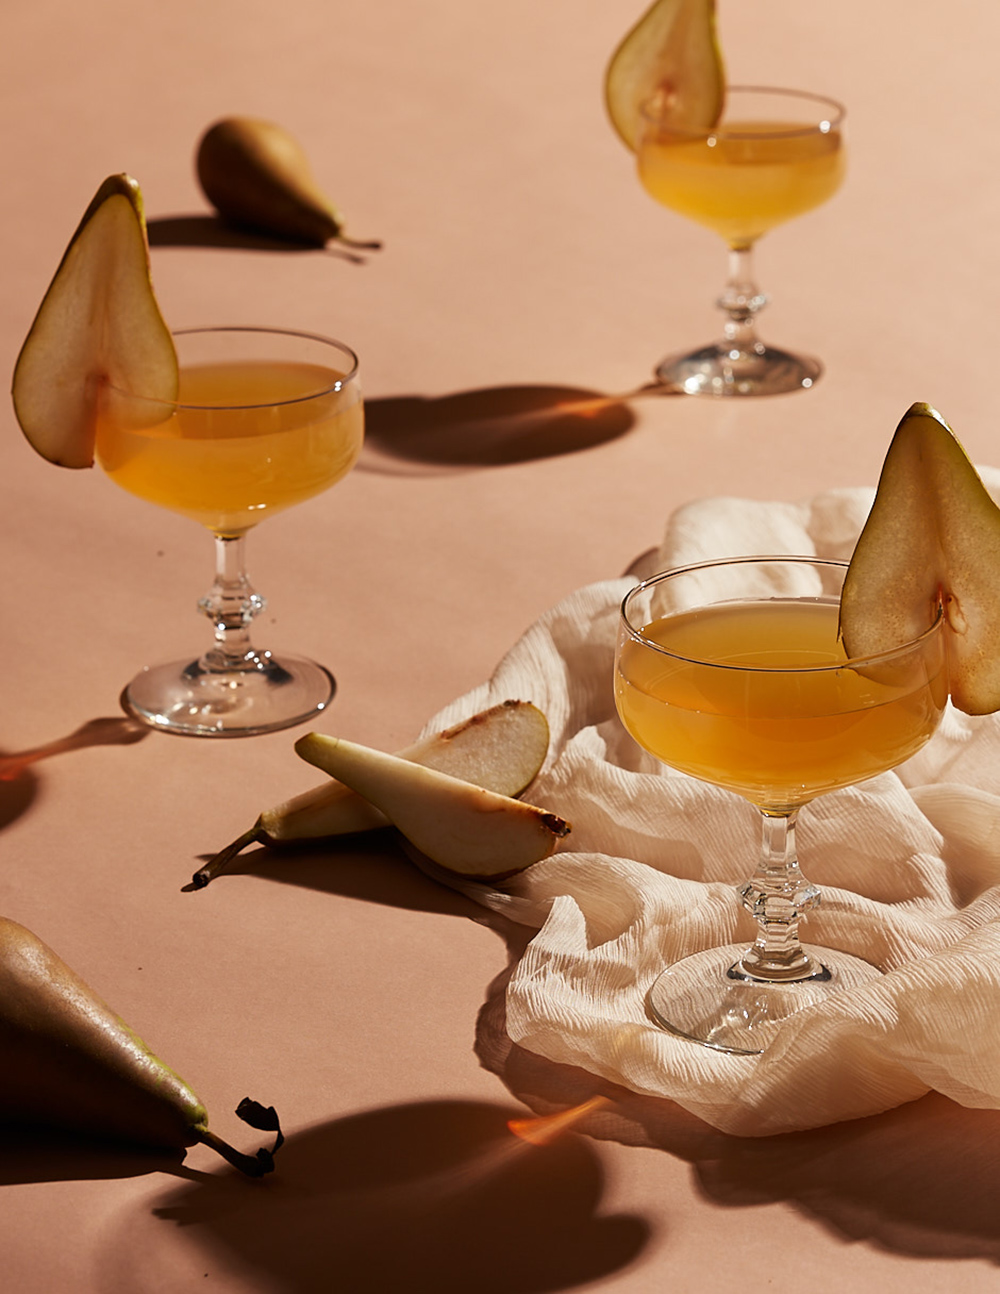 pear-cocktail-lifestyle-stylist-drink-styling-prop-lifestyle-set-designer-propstylist-foodstylist-lauren-becker.jpg